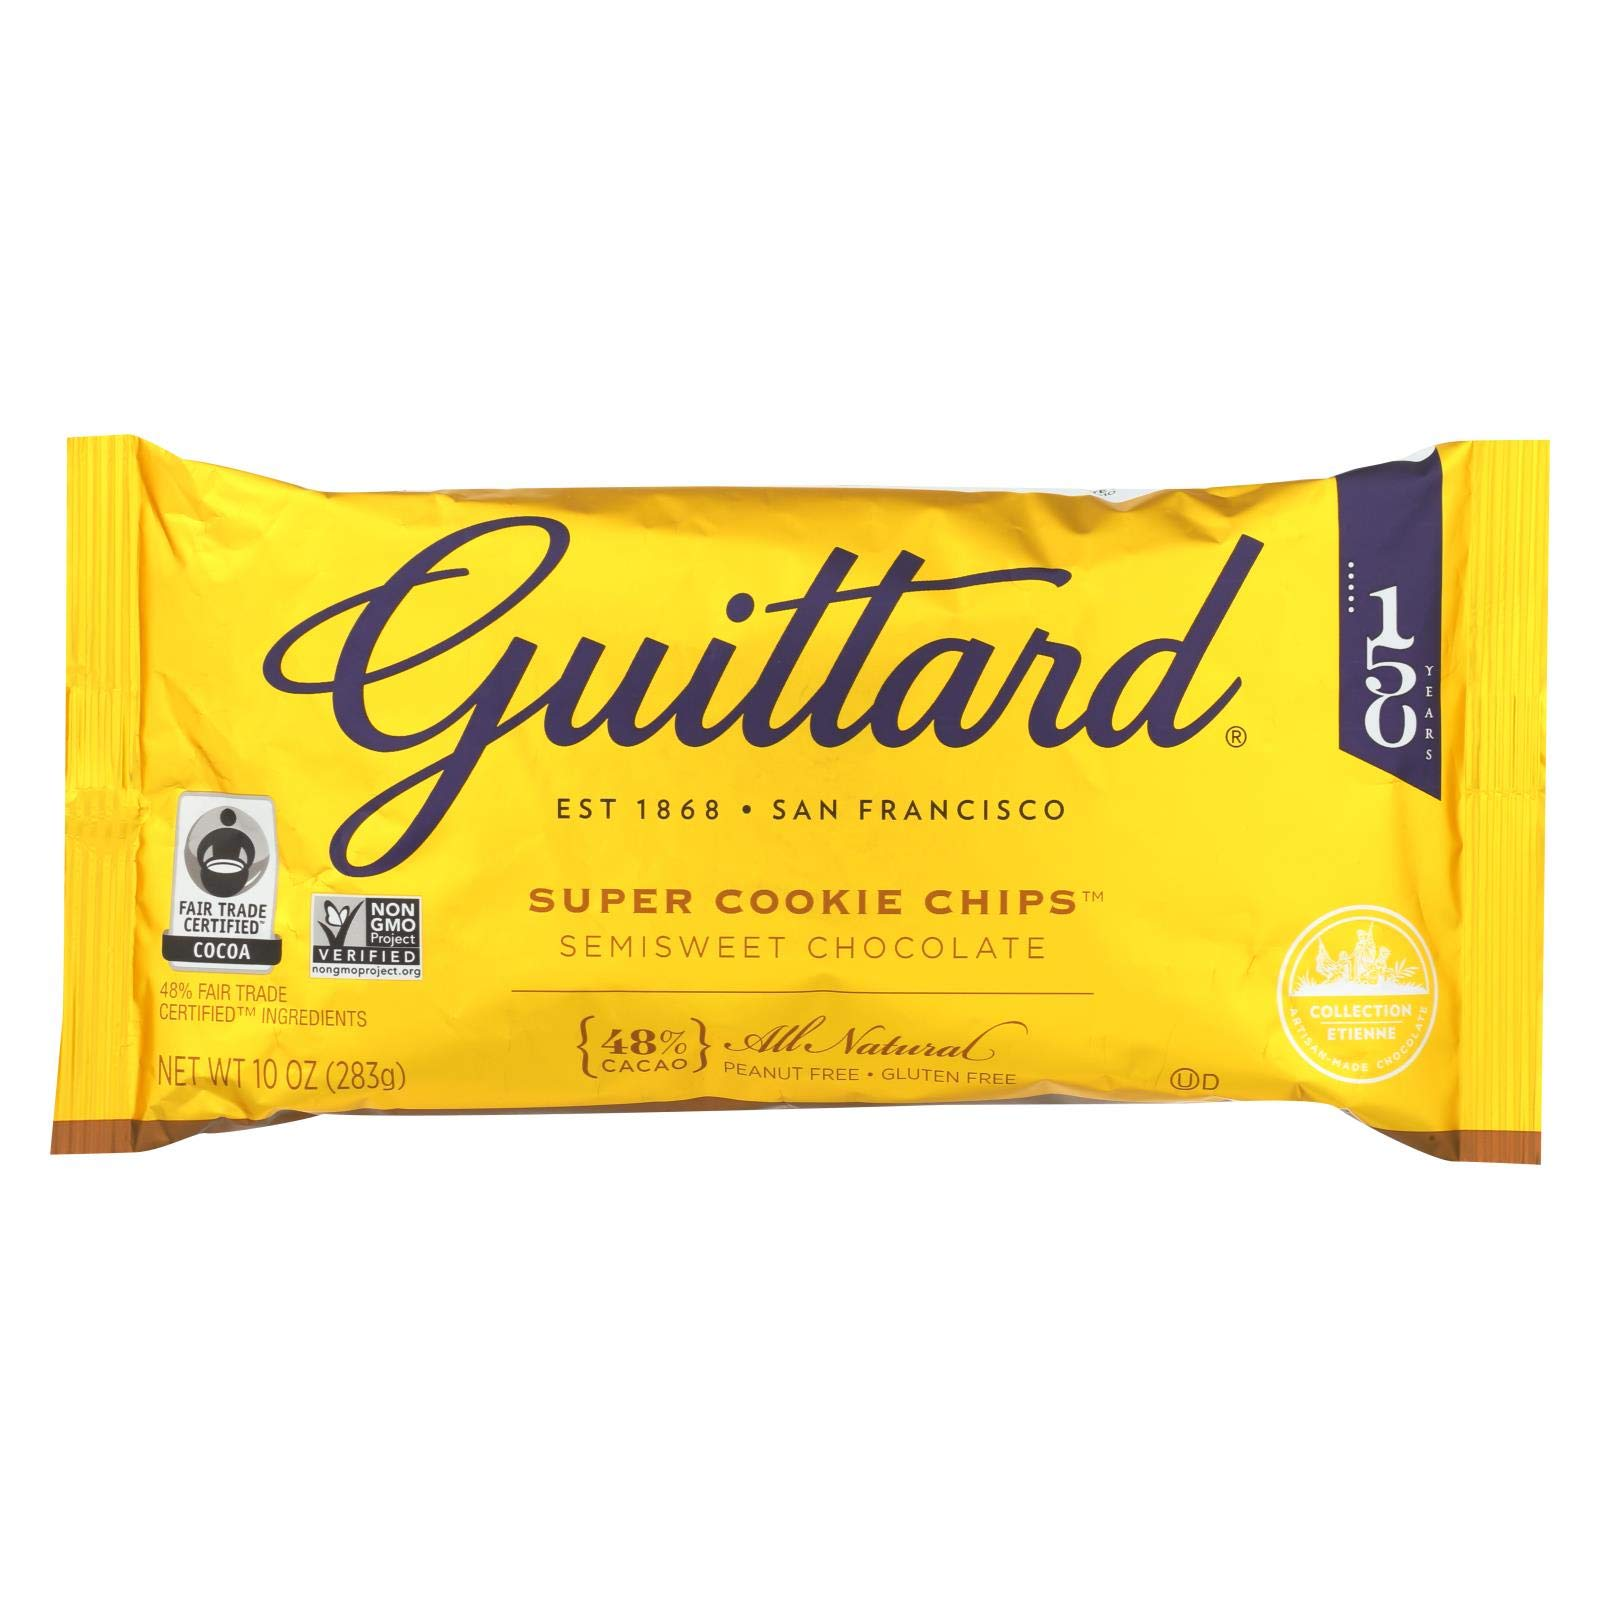 Guittard Chocolate Chips - Super Cookie Chips - Case of 12 - 10 oz. by Guittard Chocolate